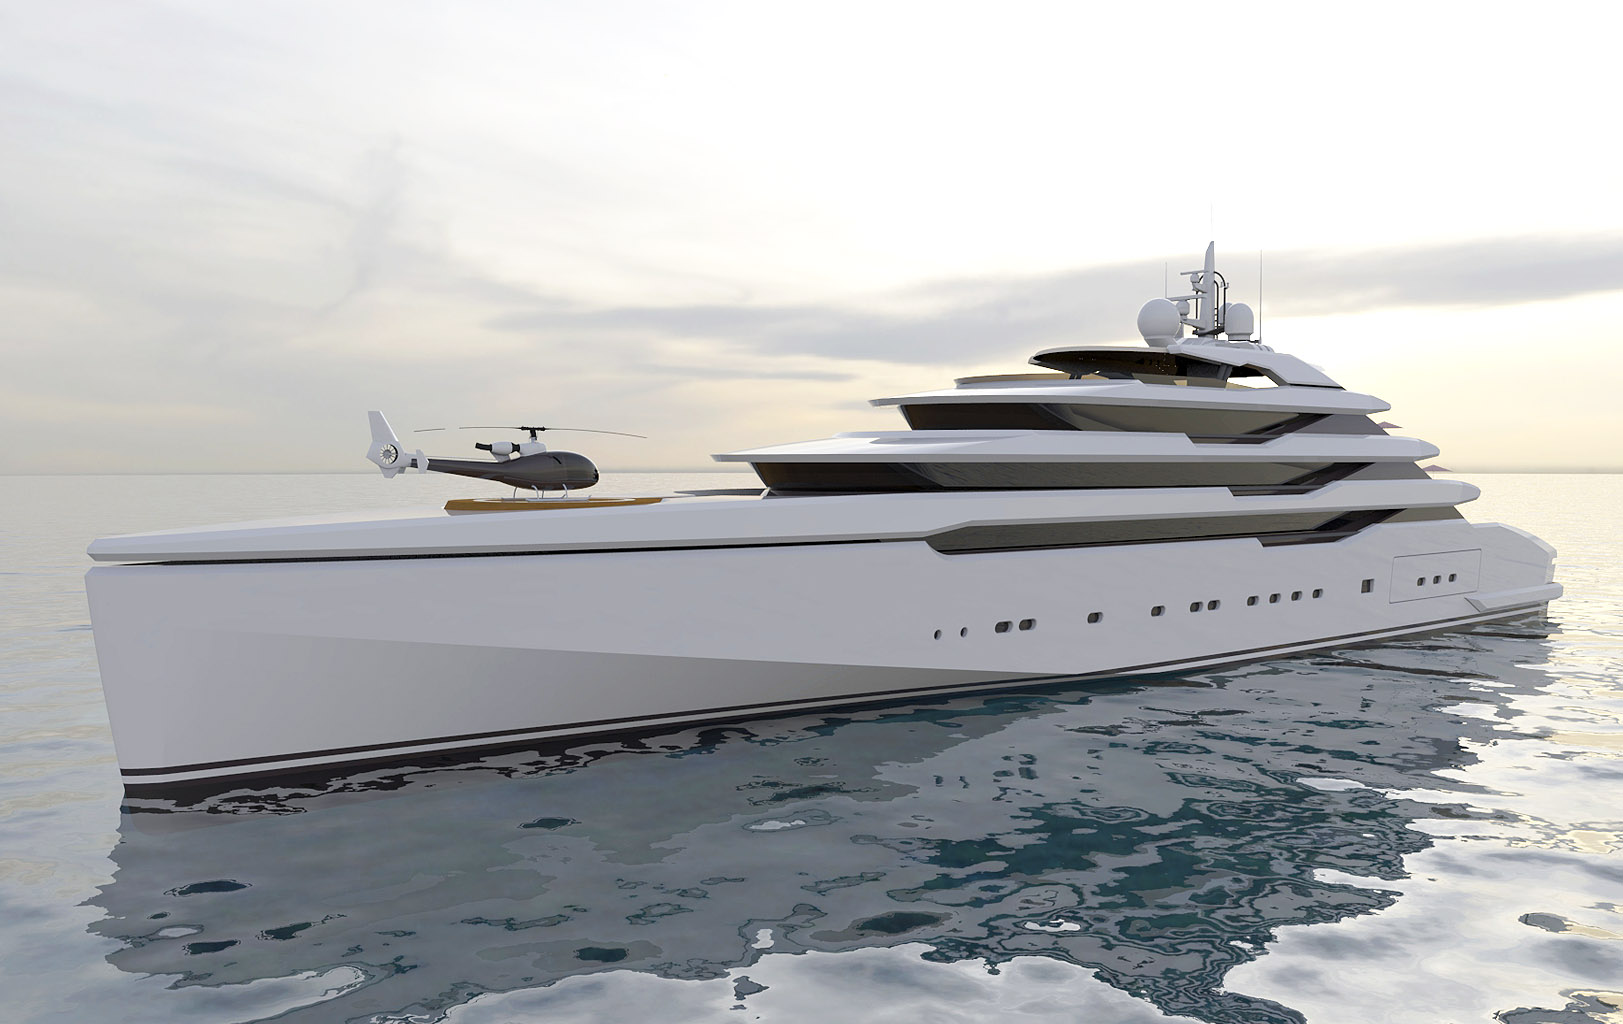 BOAT SUPER YACHT PRESS